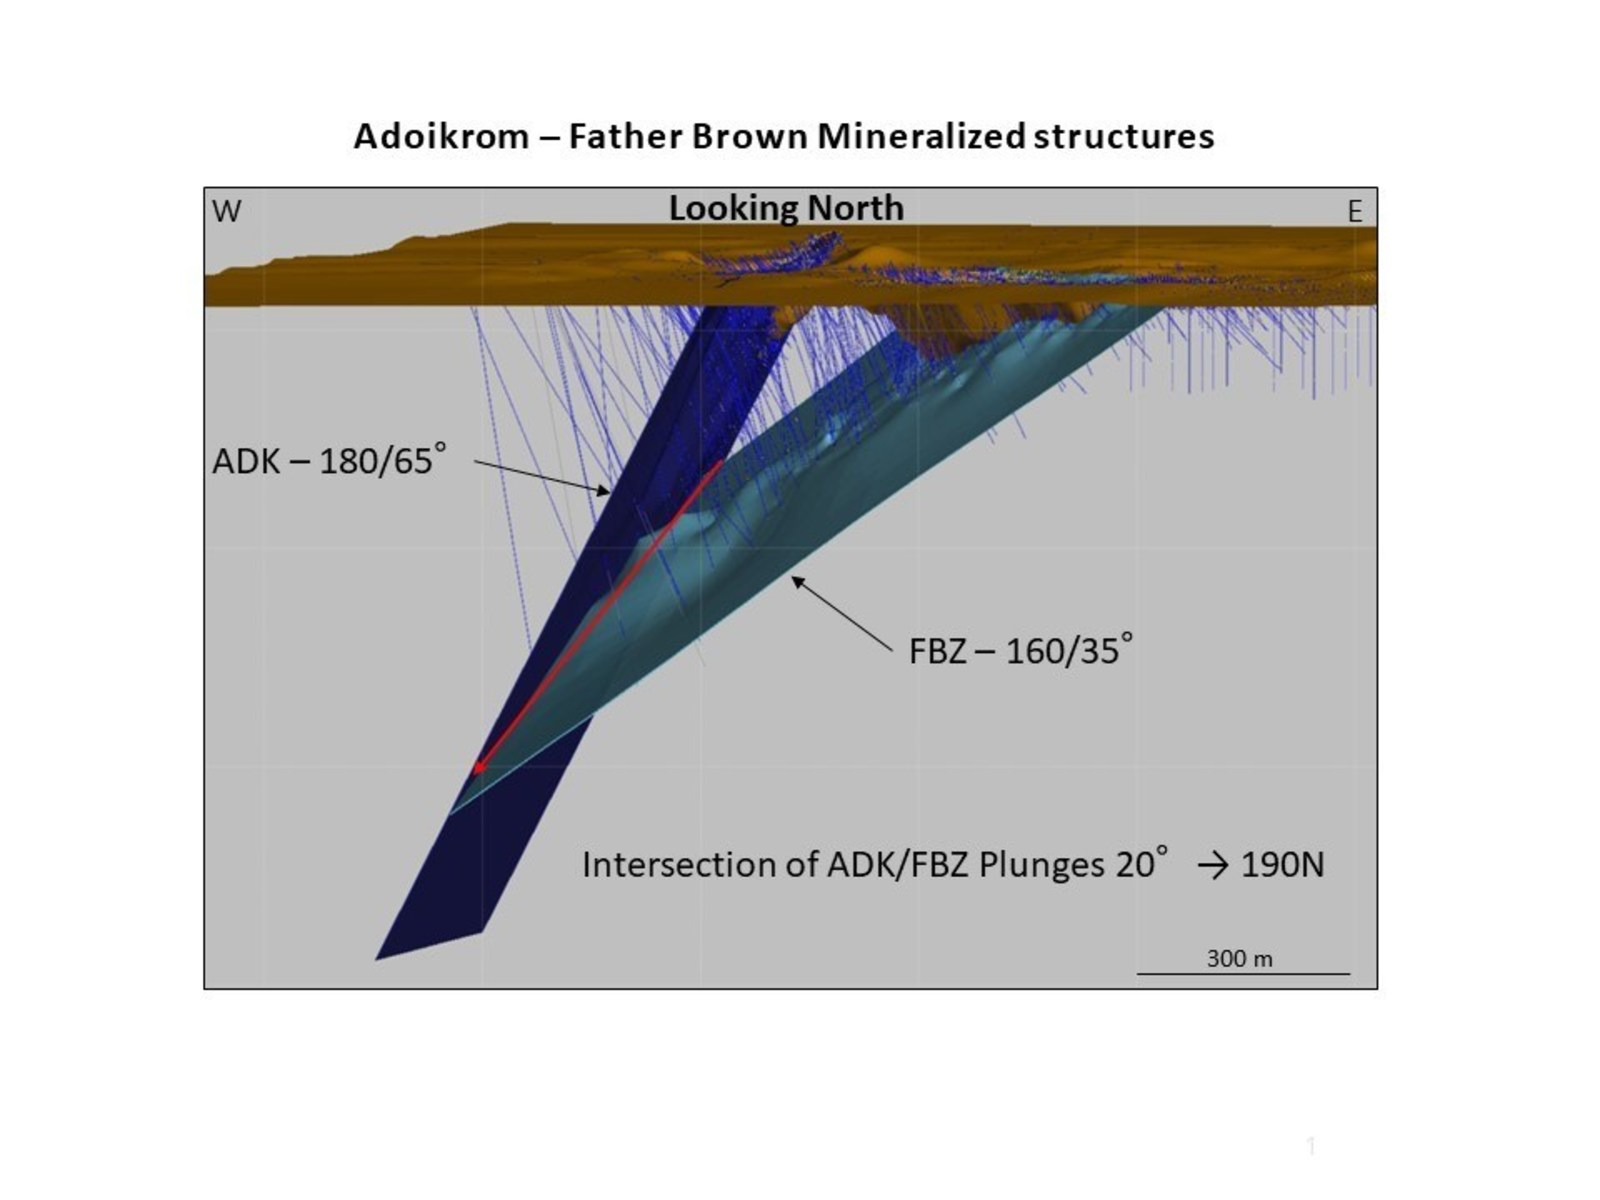 Adoikrom - Father Brown Mineralized structures